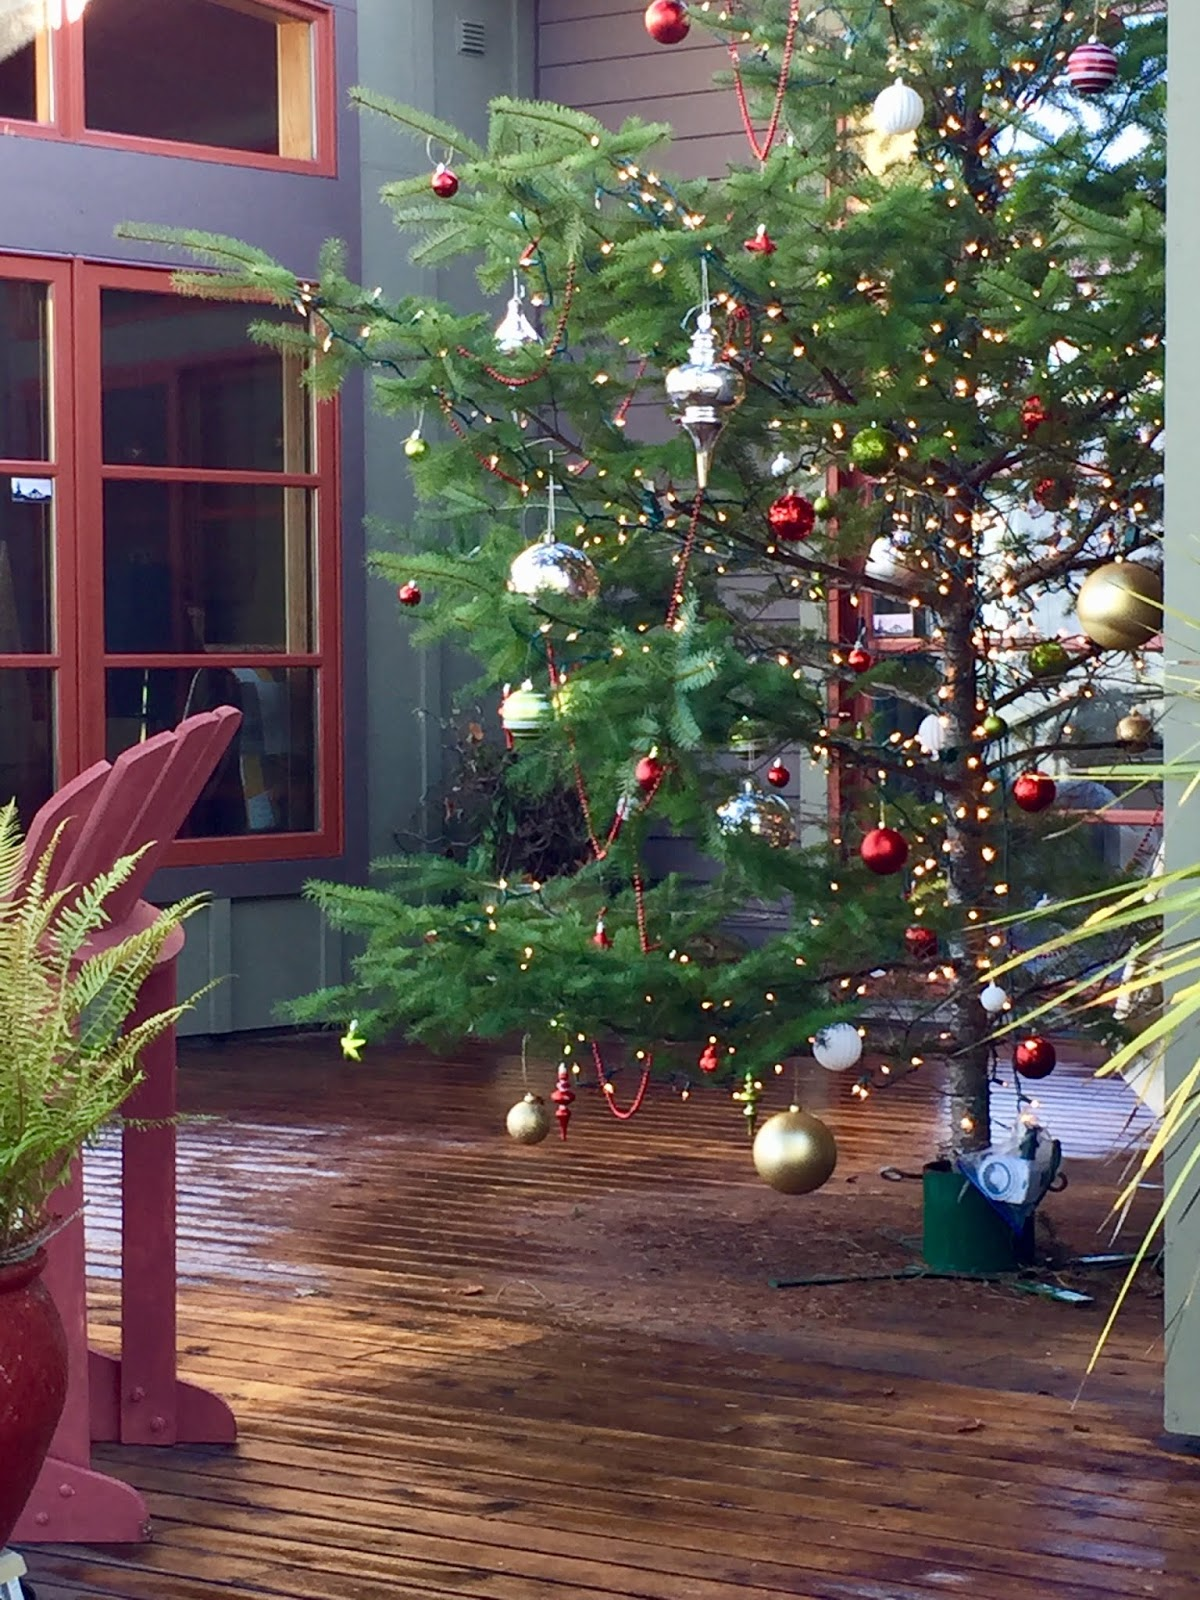 image of a decorated Christmas Tree, including lights and ornaments, on a deck in the winter